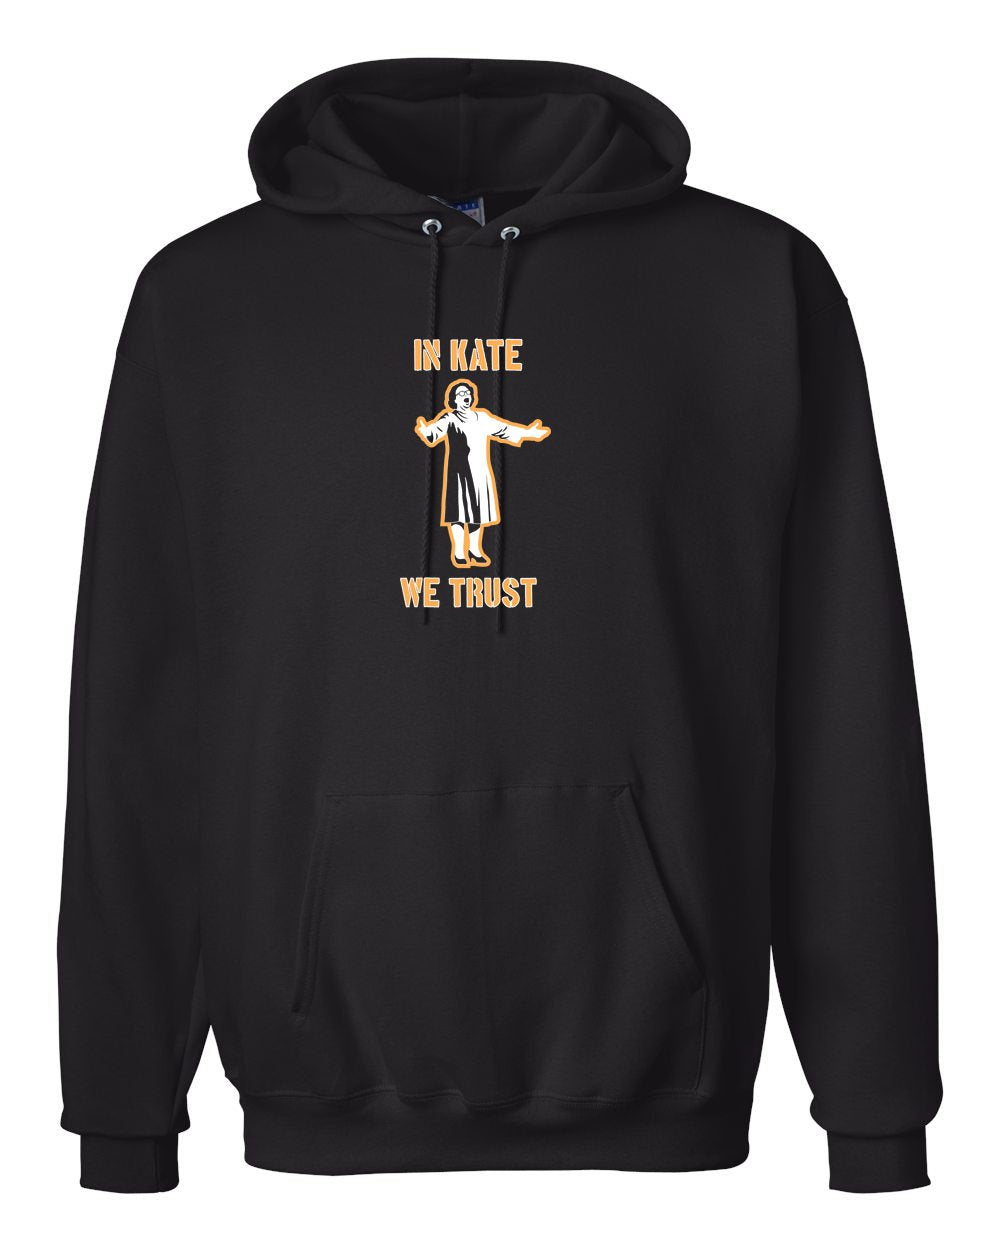 In Kate We Trust Hoodie